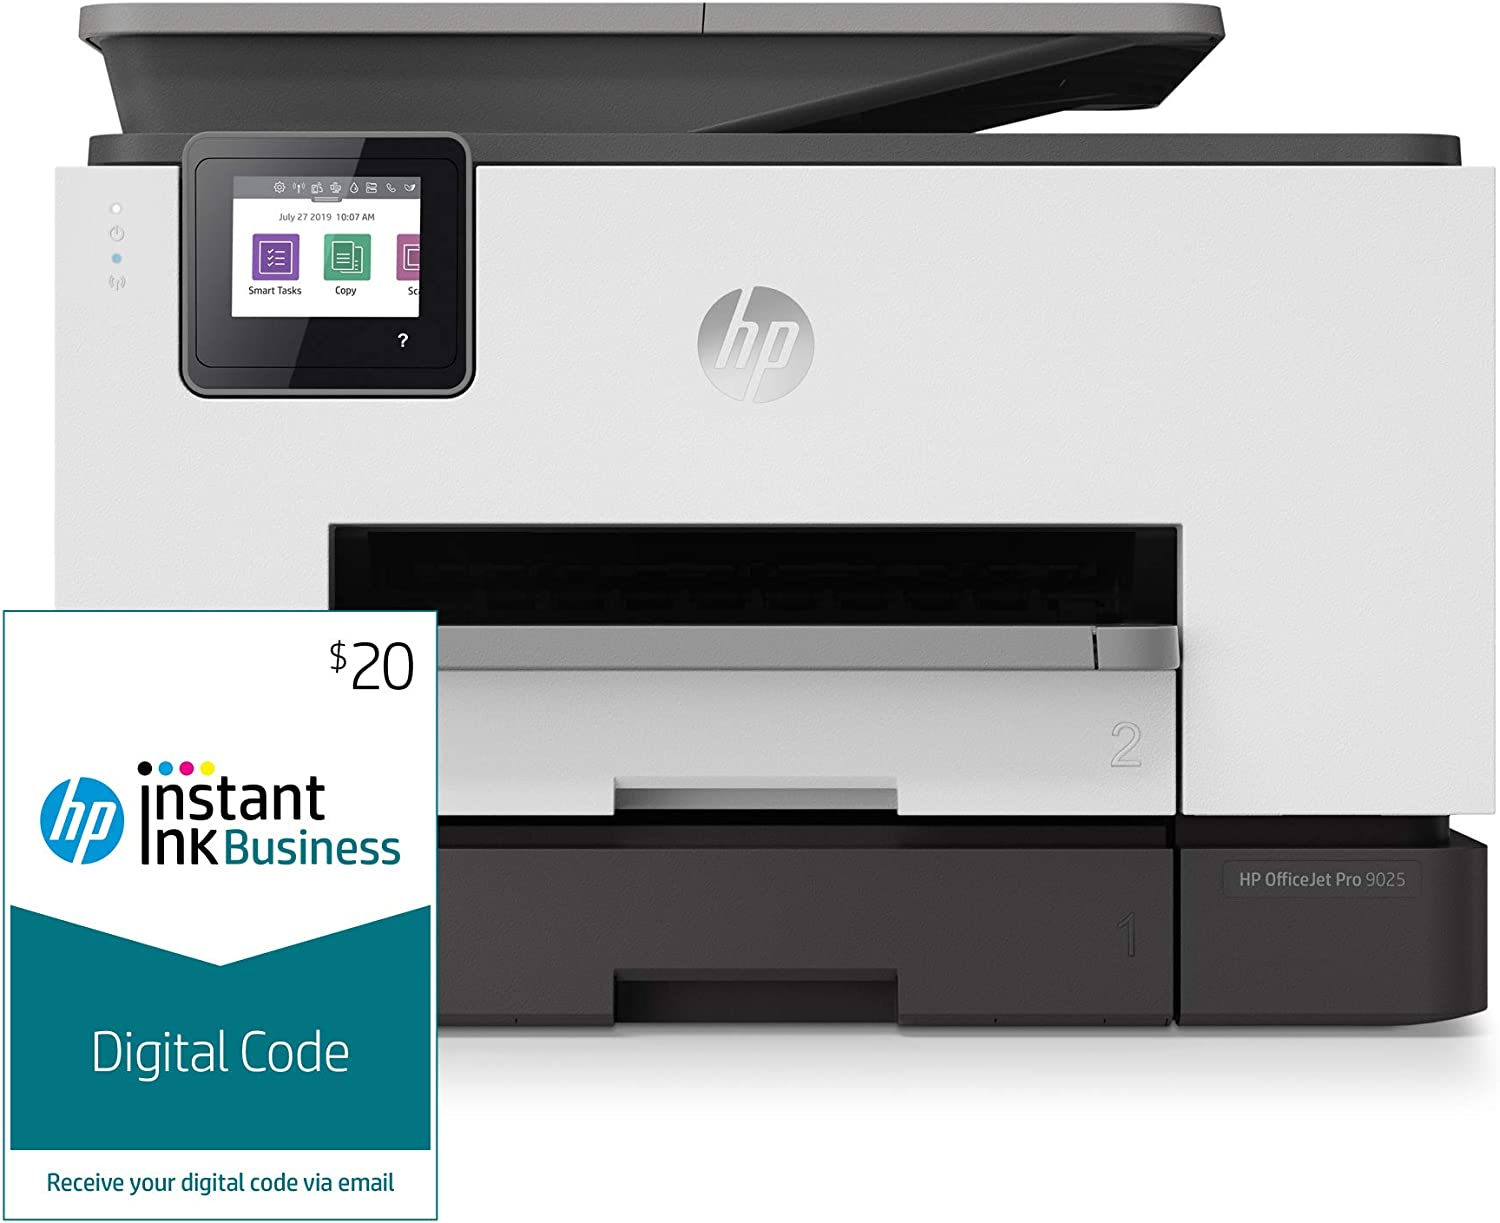 HP OfficeJet Pro 9025 All-in-One Wireless Printer, with Smart Tasks, Advanced Scan Solutions and Instant Ink Business $20 Prepaid Code